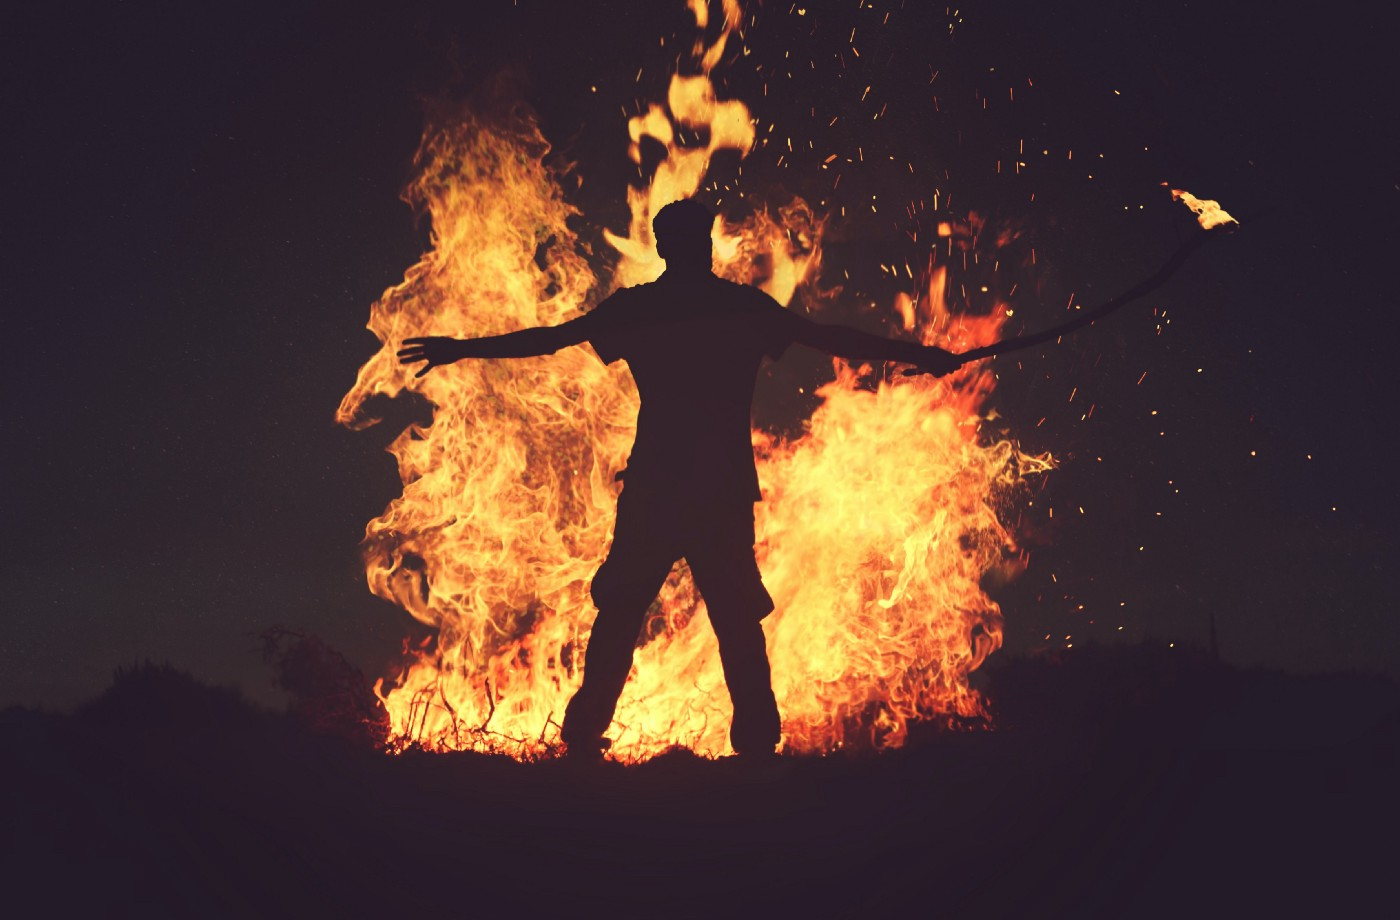 Person in front of burning fire